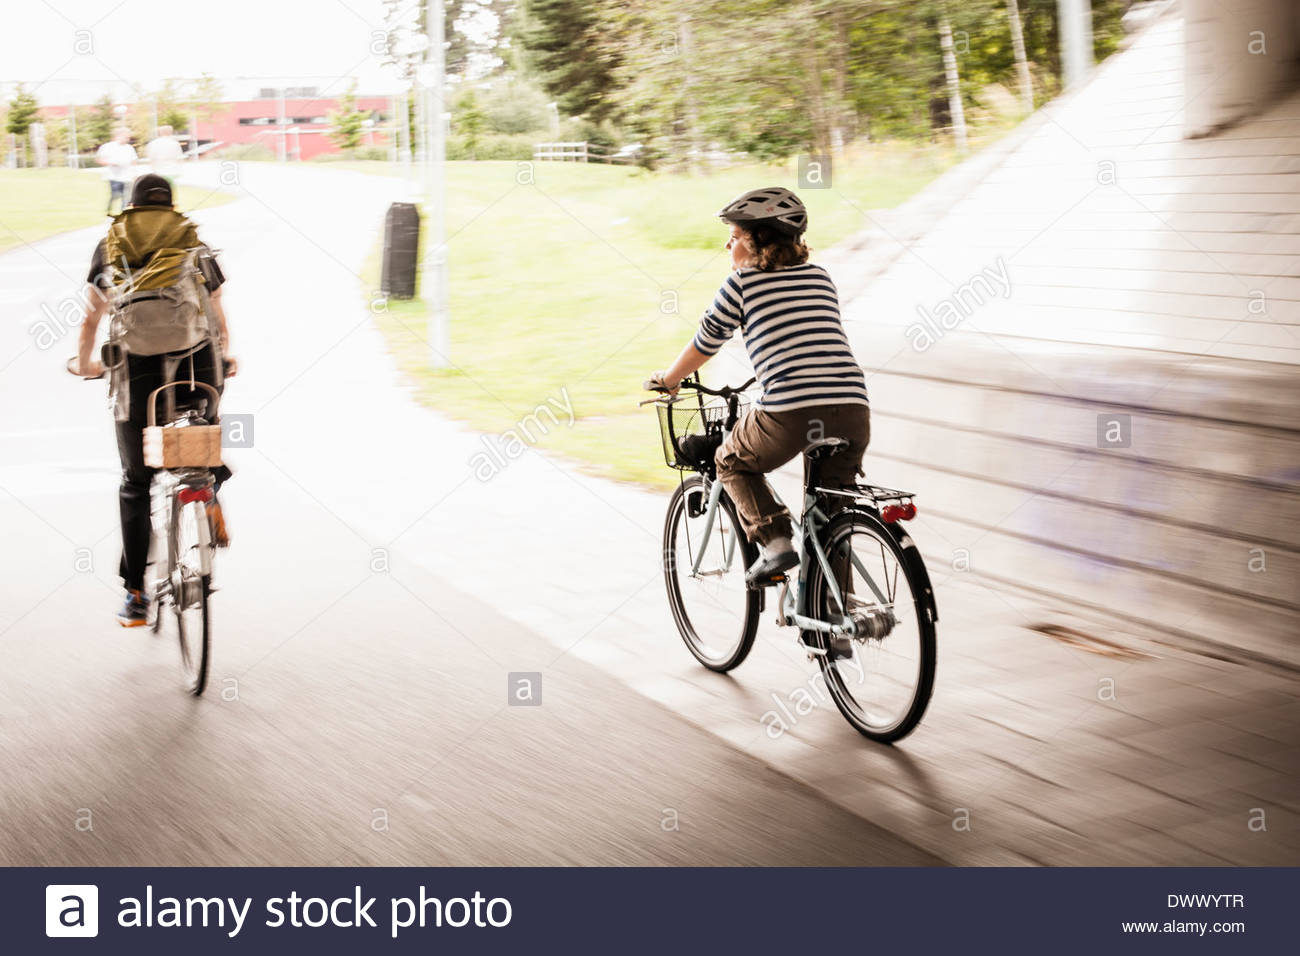 Blurred motion of father and daughter riding bicycles on street - Stock Image